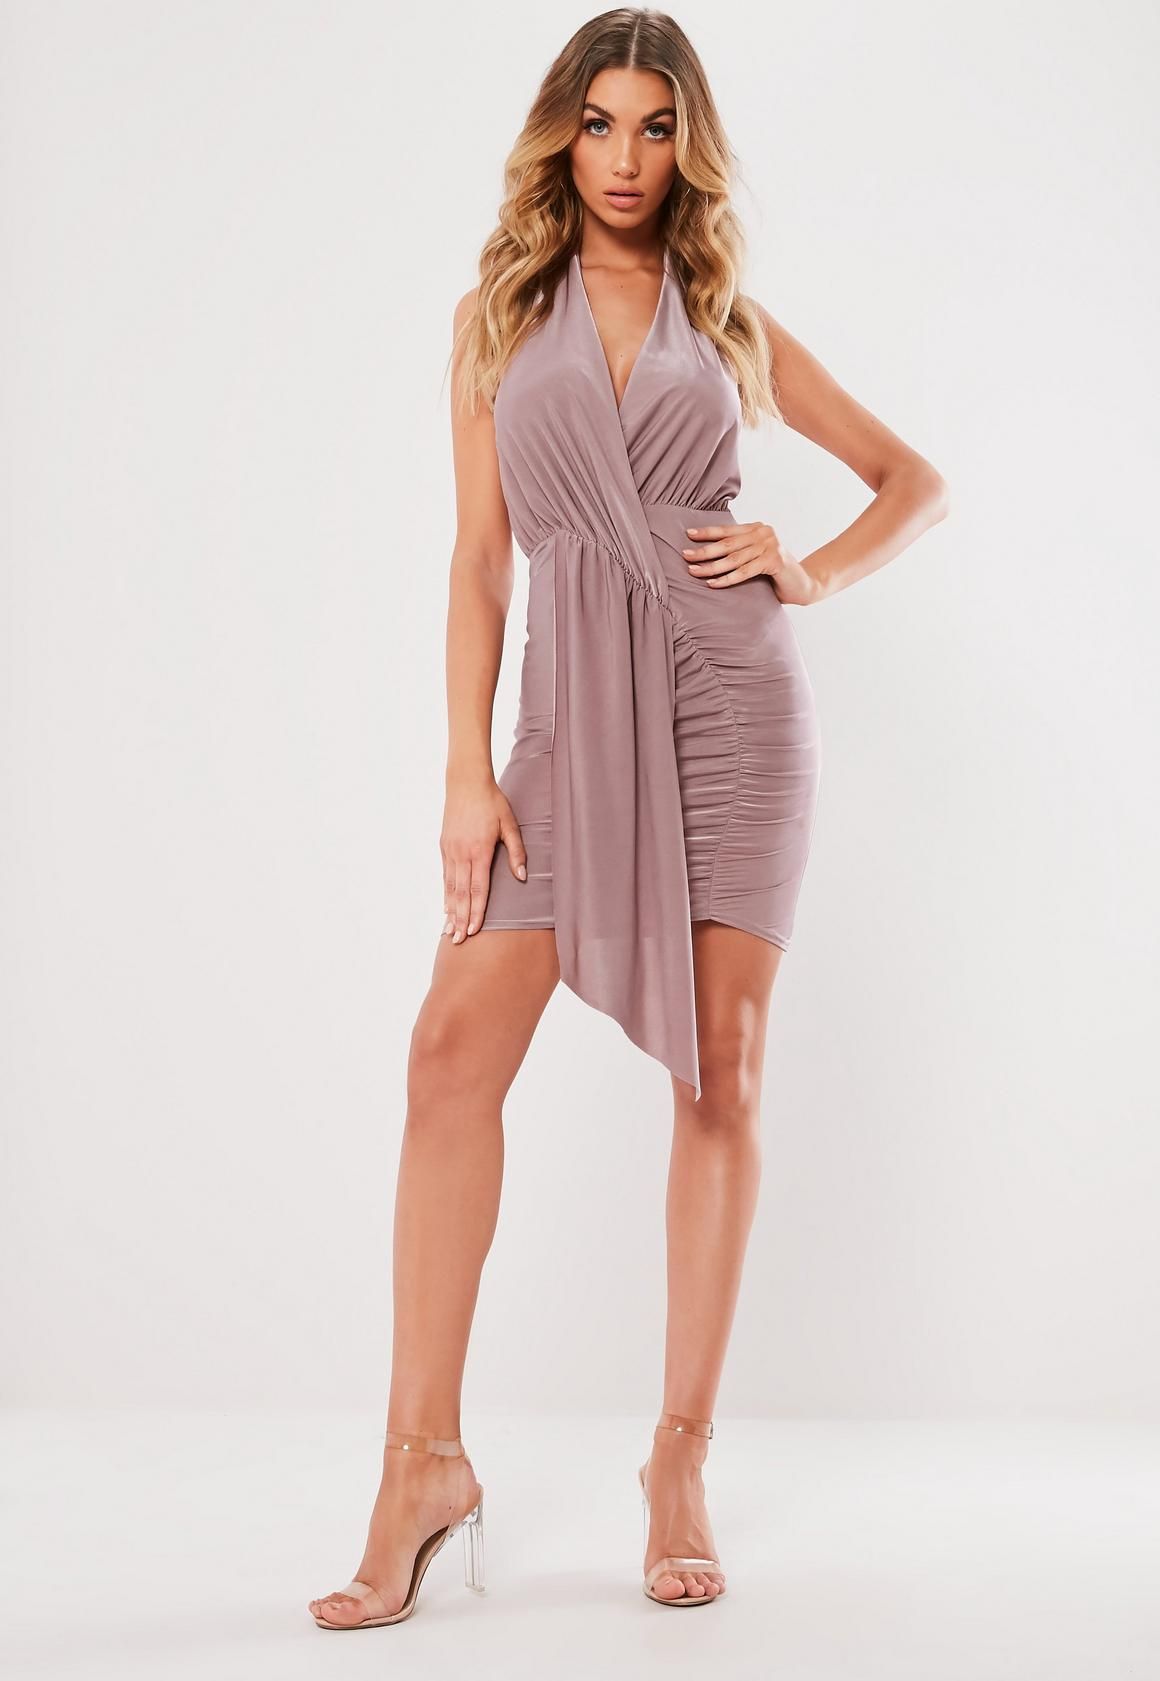 Missguided - robe dos-nu courte tissu drappé lilas - 2